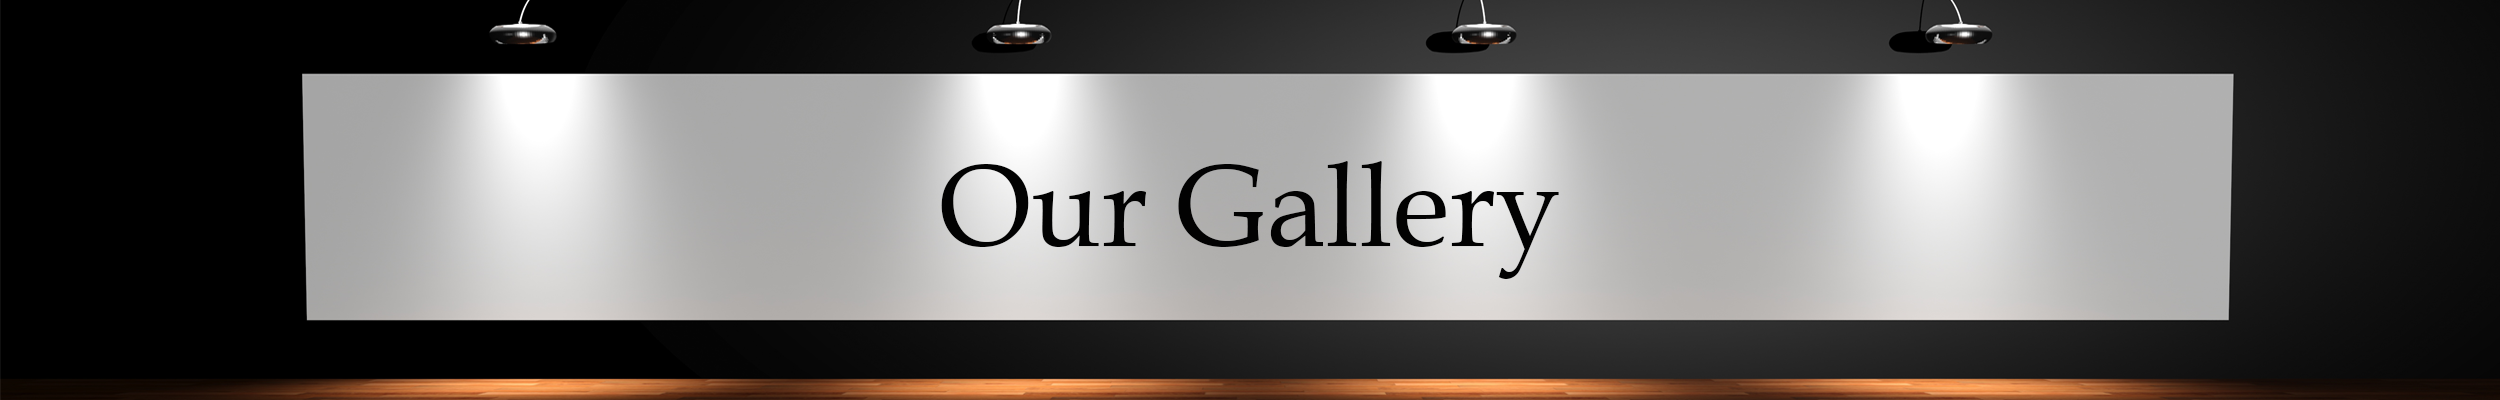 GallerySliderFinal